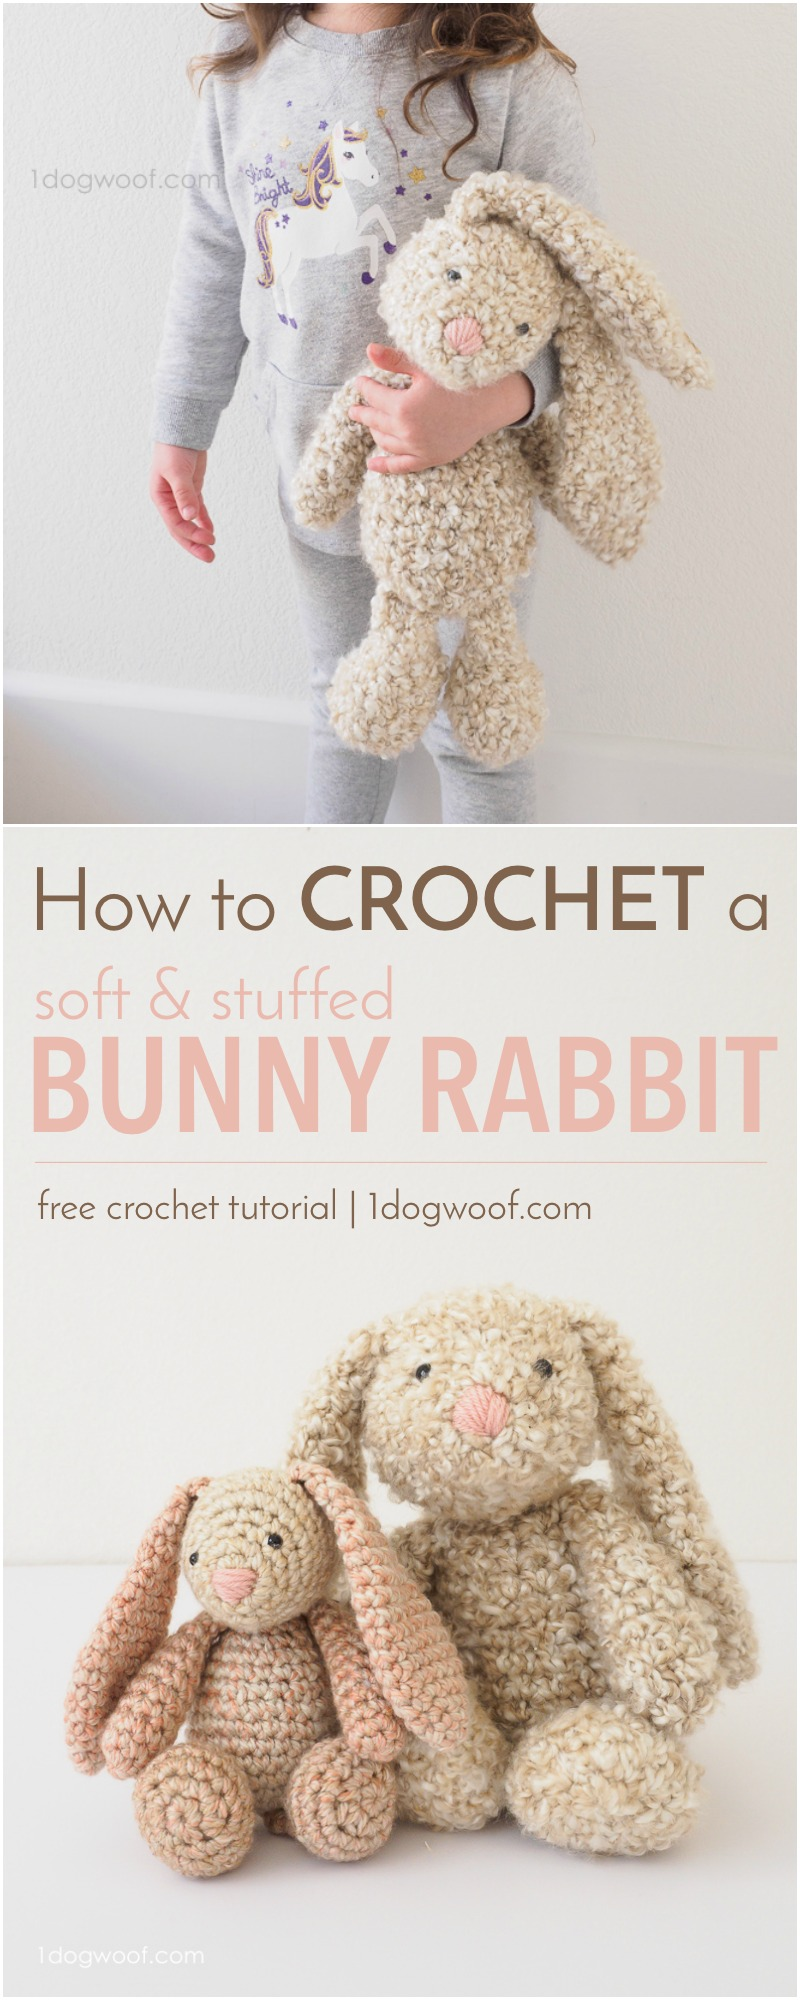 How to crochet a soft, squishy, floppy ear, stuffed bunny rabbit using Lion Brand Homespun yarn. Perfect for Easter or a DIY baby shower gift!